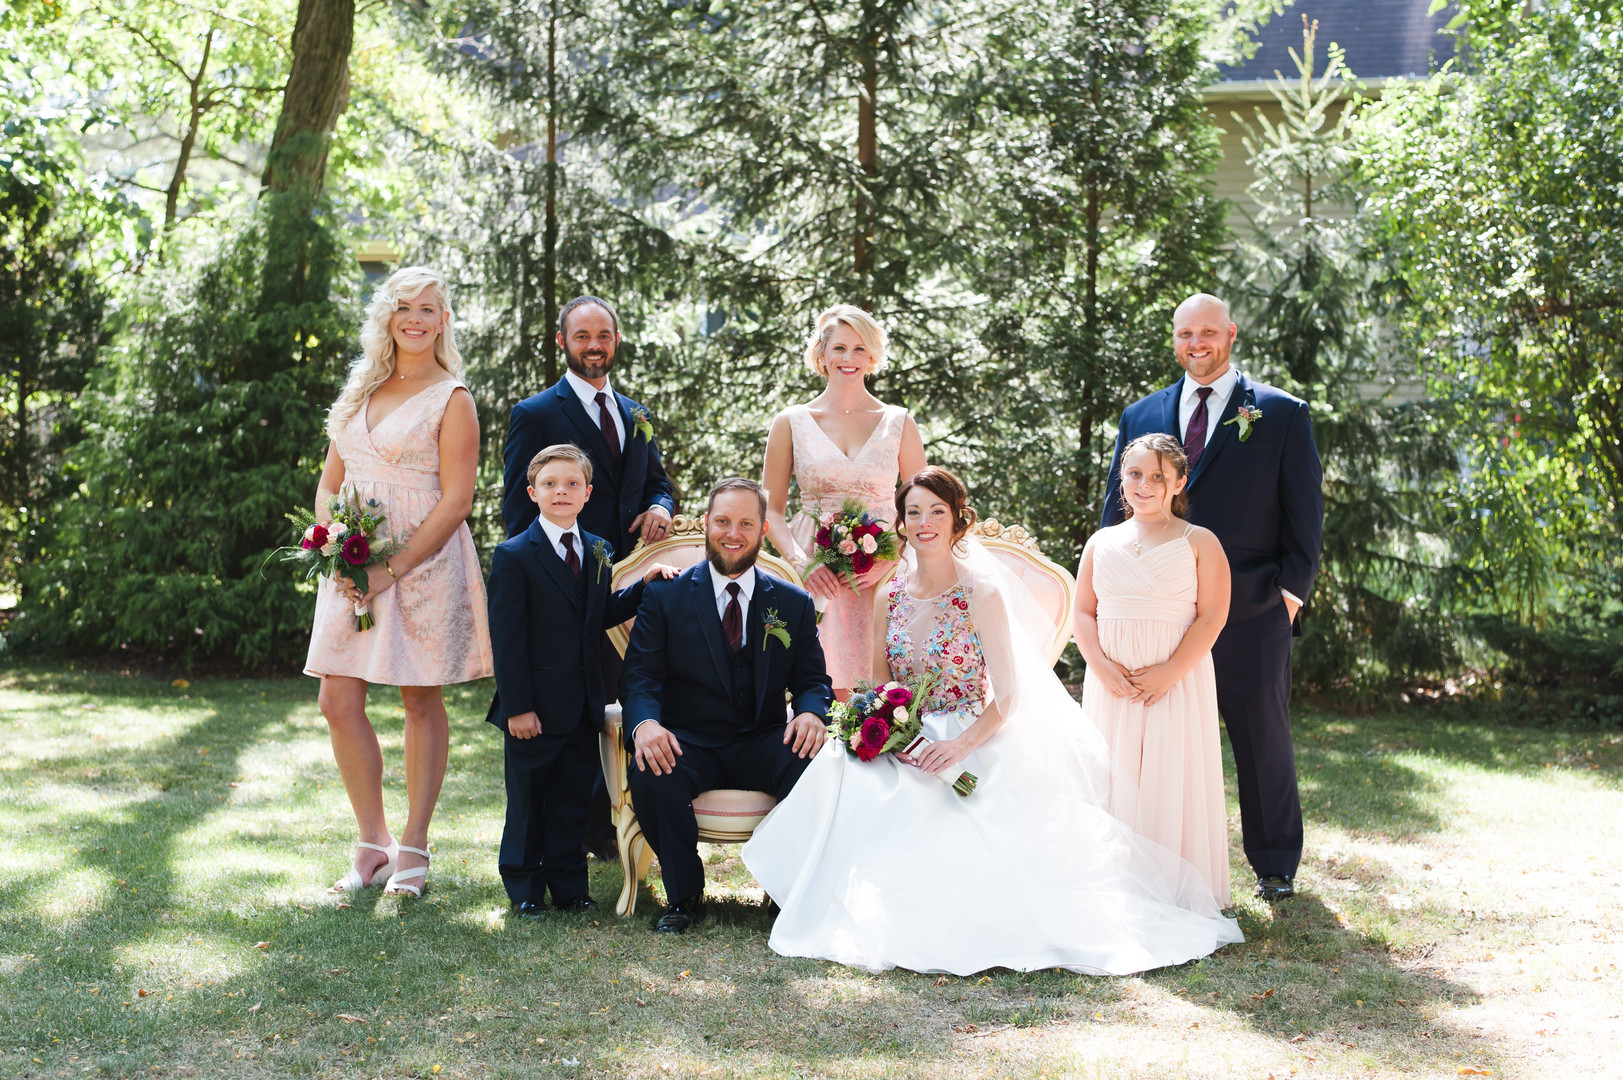 Gold and Black Bridal Party Chicago Wedding Elite Photography